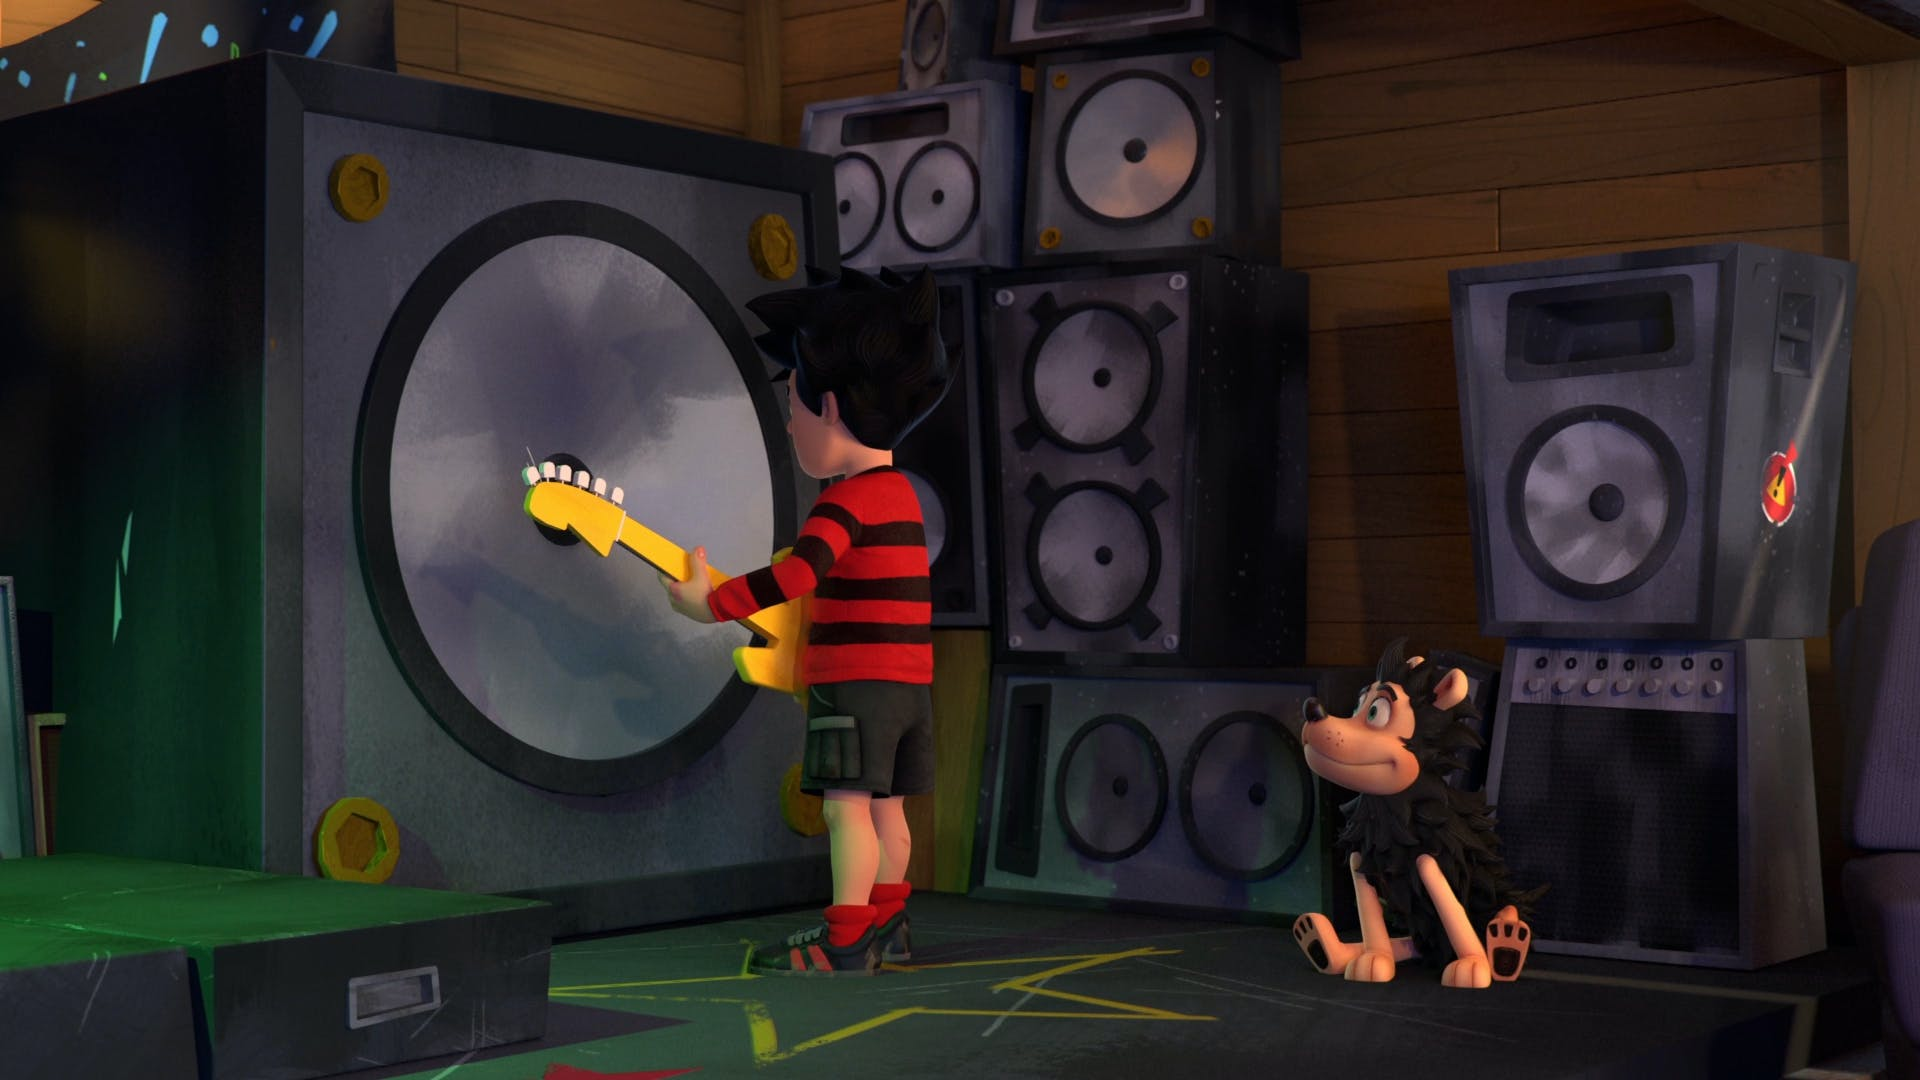 Dennis and Gnasher in front of the speakers